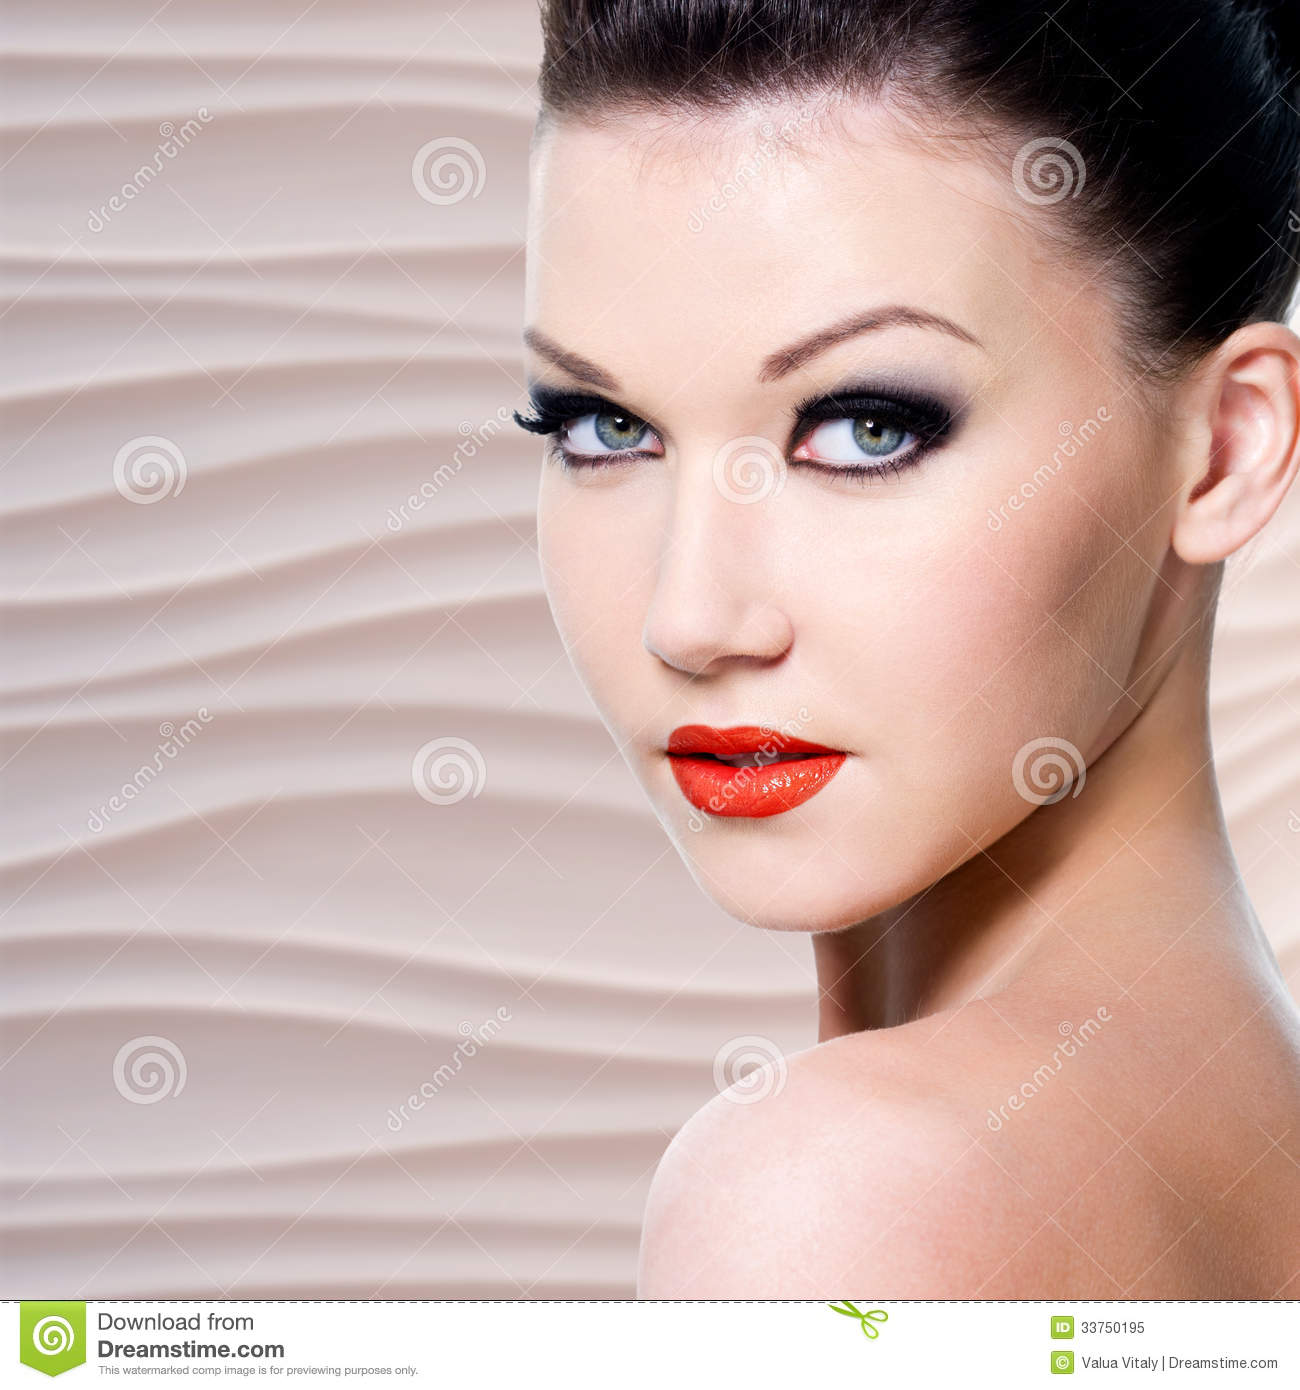 Head With Eye Makeup With Red Lipstick